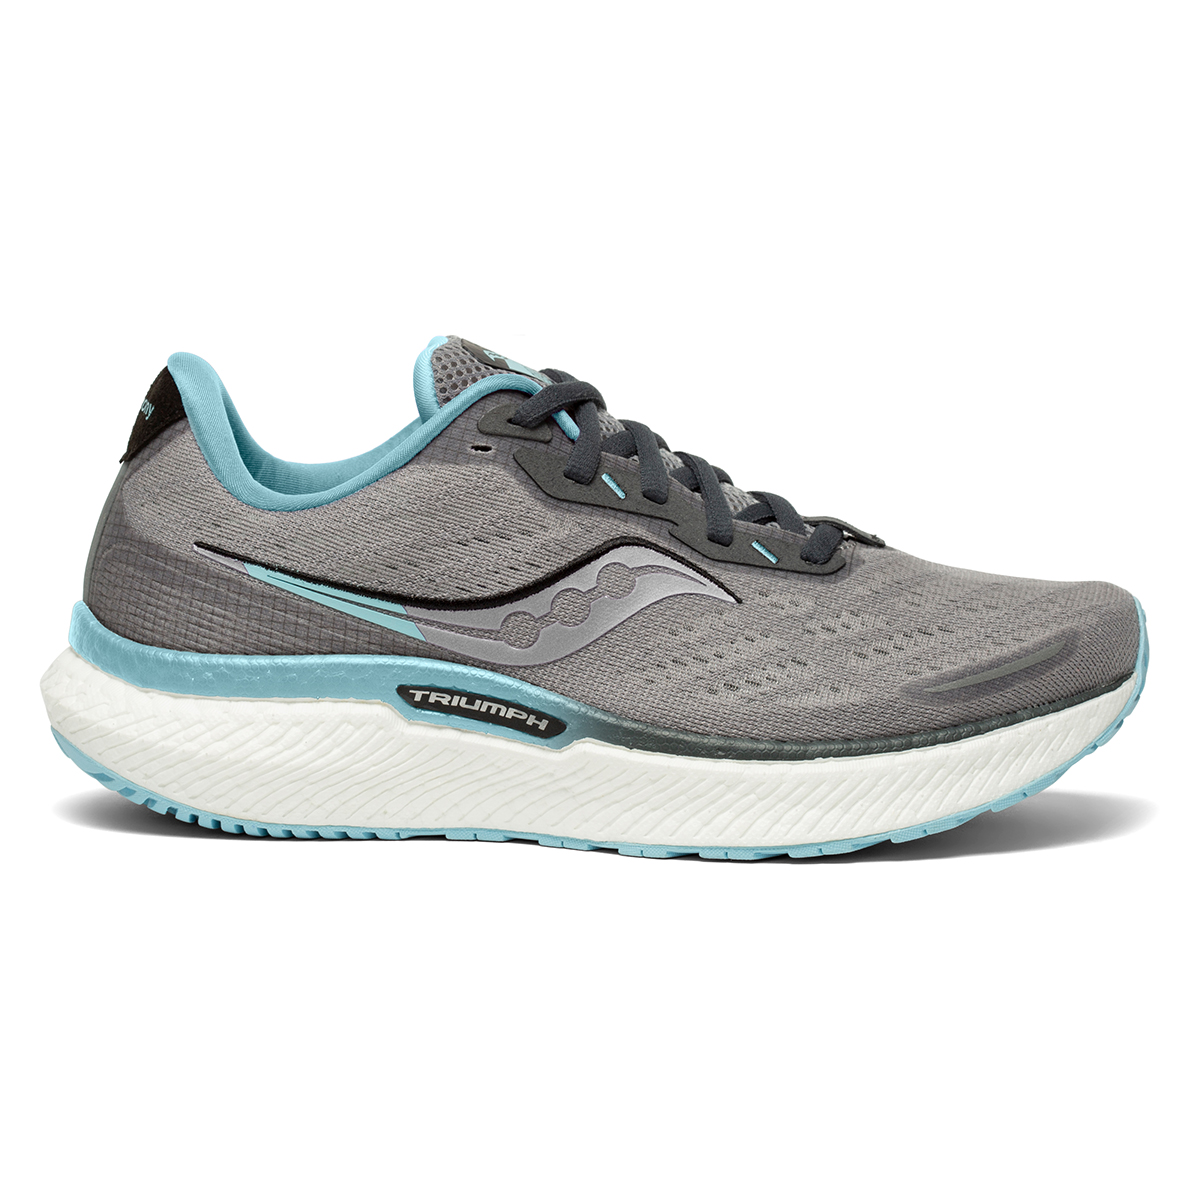 Women's Saucony Triumph 19 Running Shoe - Color: Alloy/Concord - Size: 6 - Width: Regular, Alloy/Concord, large, image 1